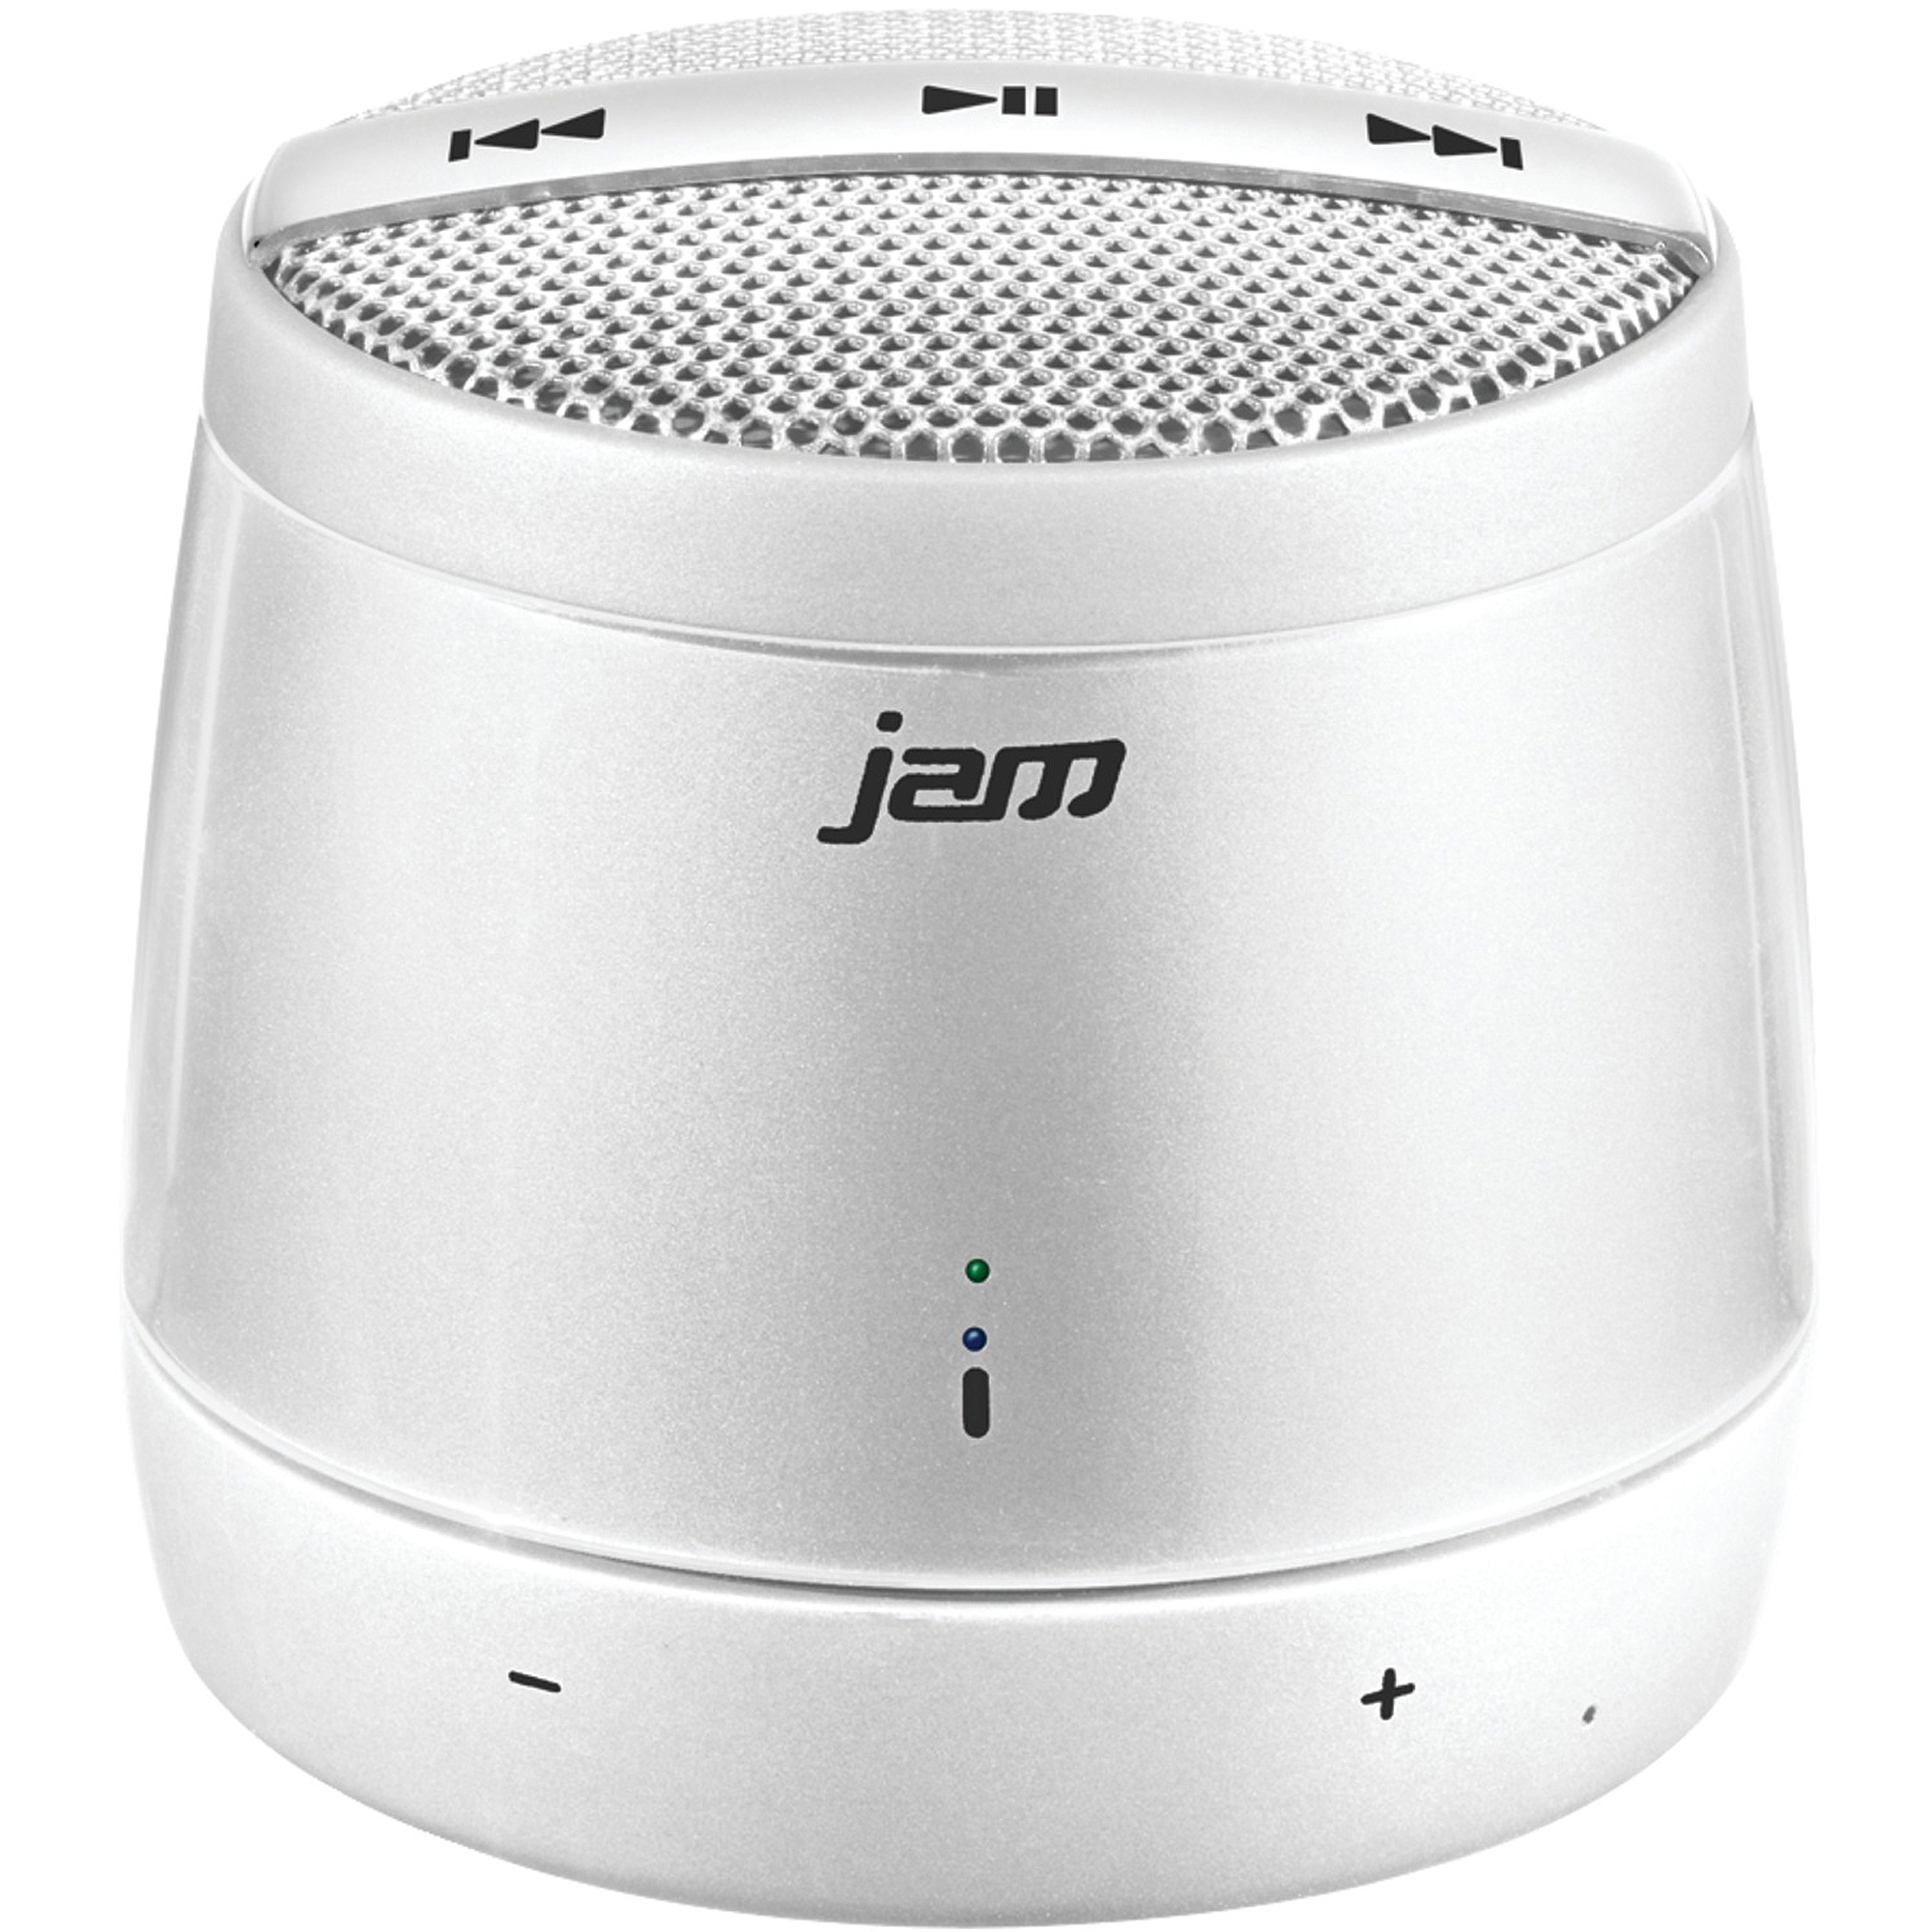 Jam Hx-p550wt Touch Bluetooth Speaker, White